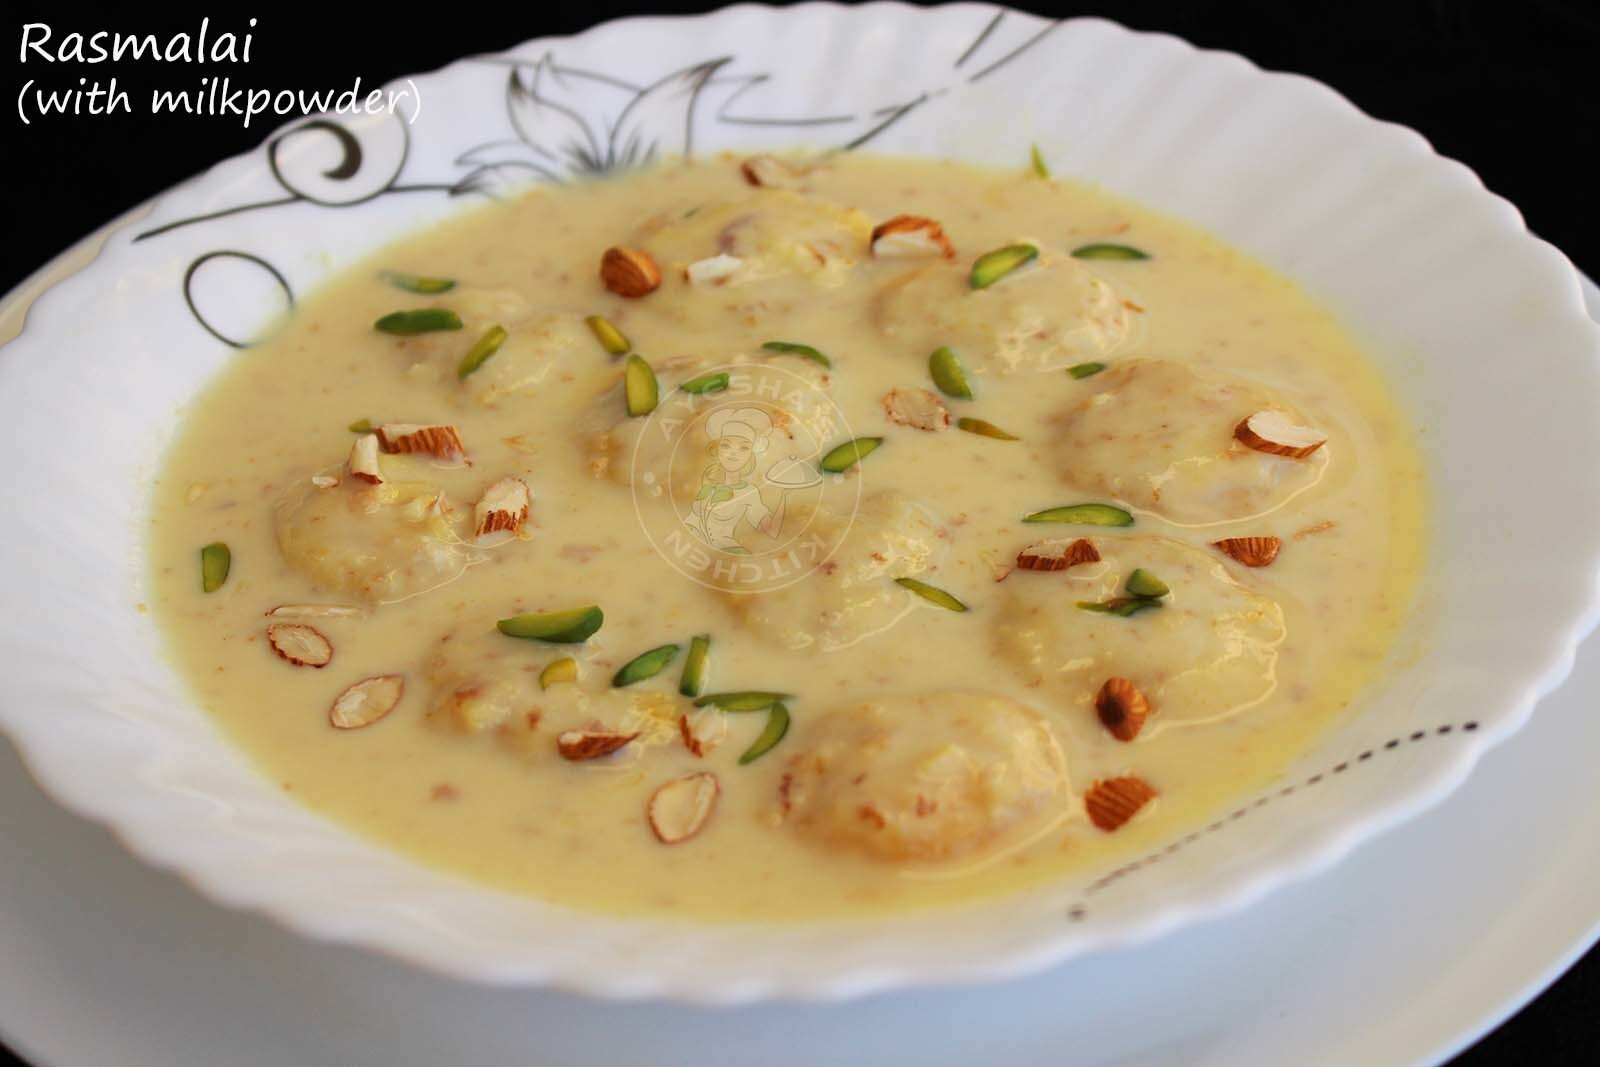 INDIAN DESSERT RASMALAI - MILK POWDER RECIPES